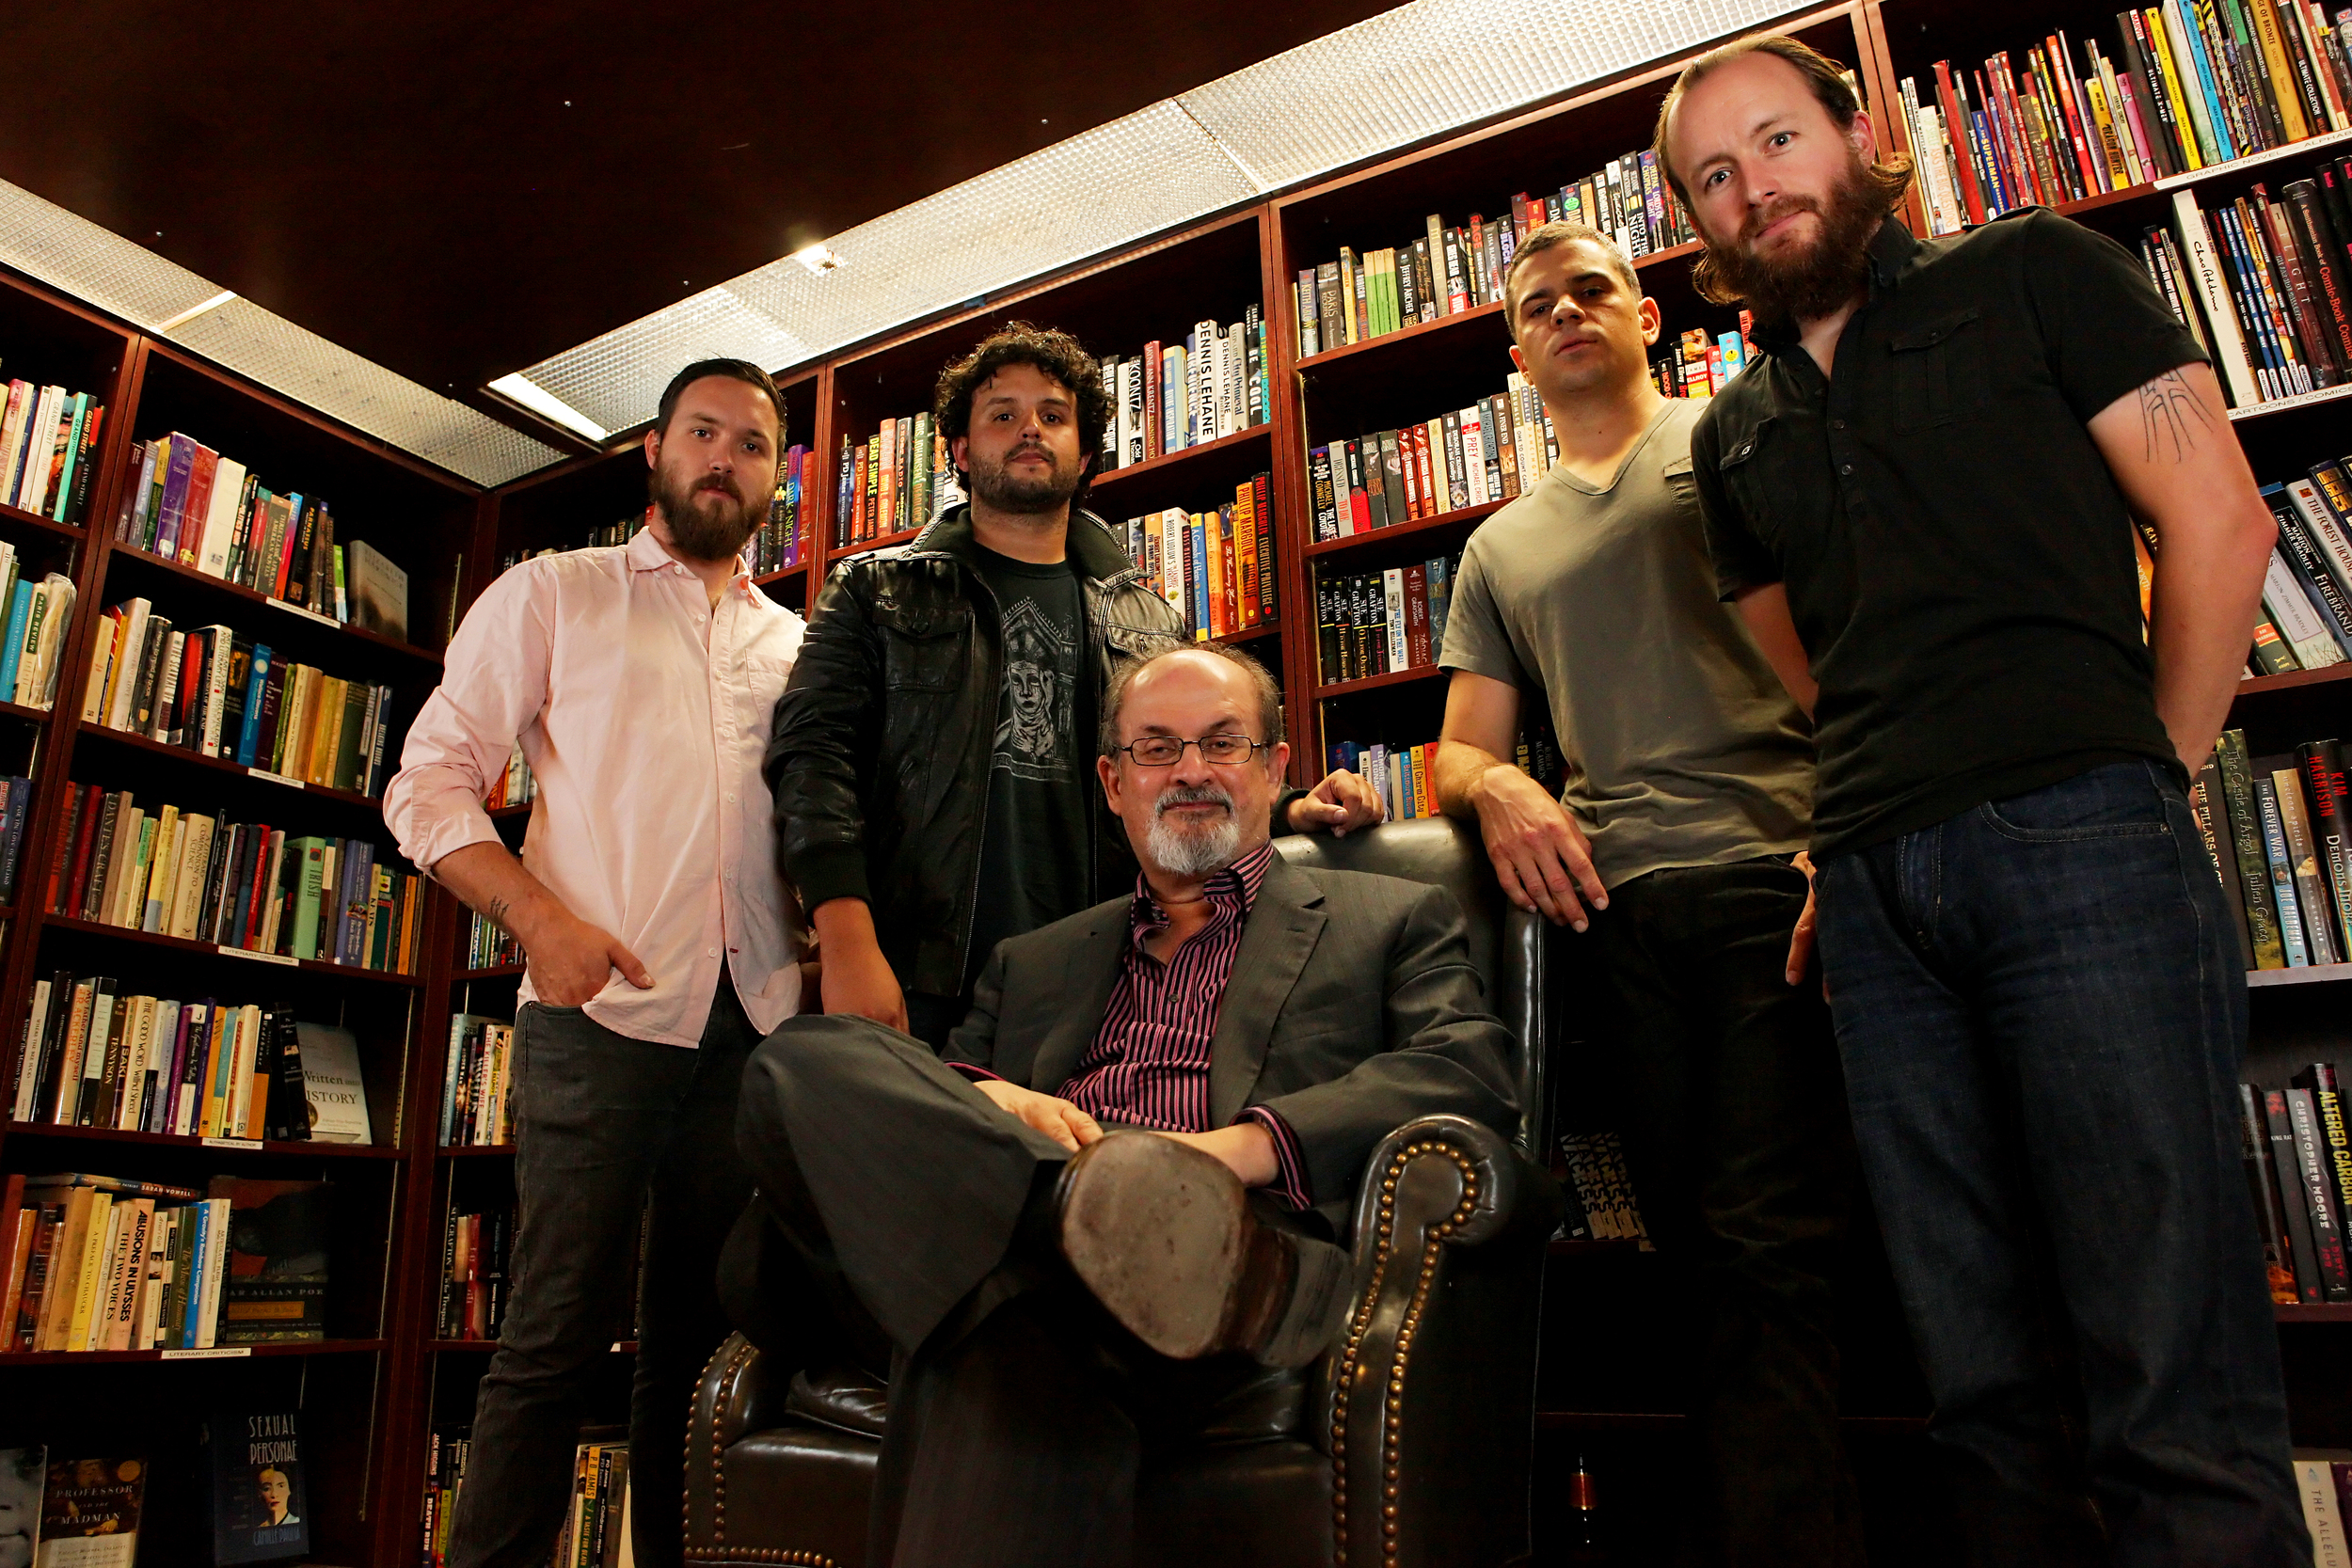 spin-presents-liner-notes-with-salman-rushdie-and-dredg_3975032512_o.jpg